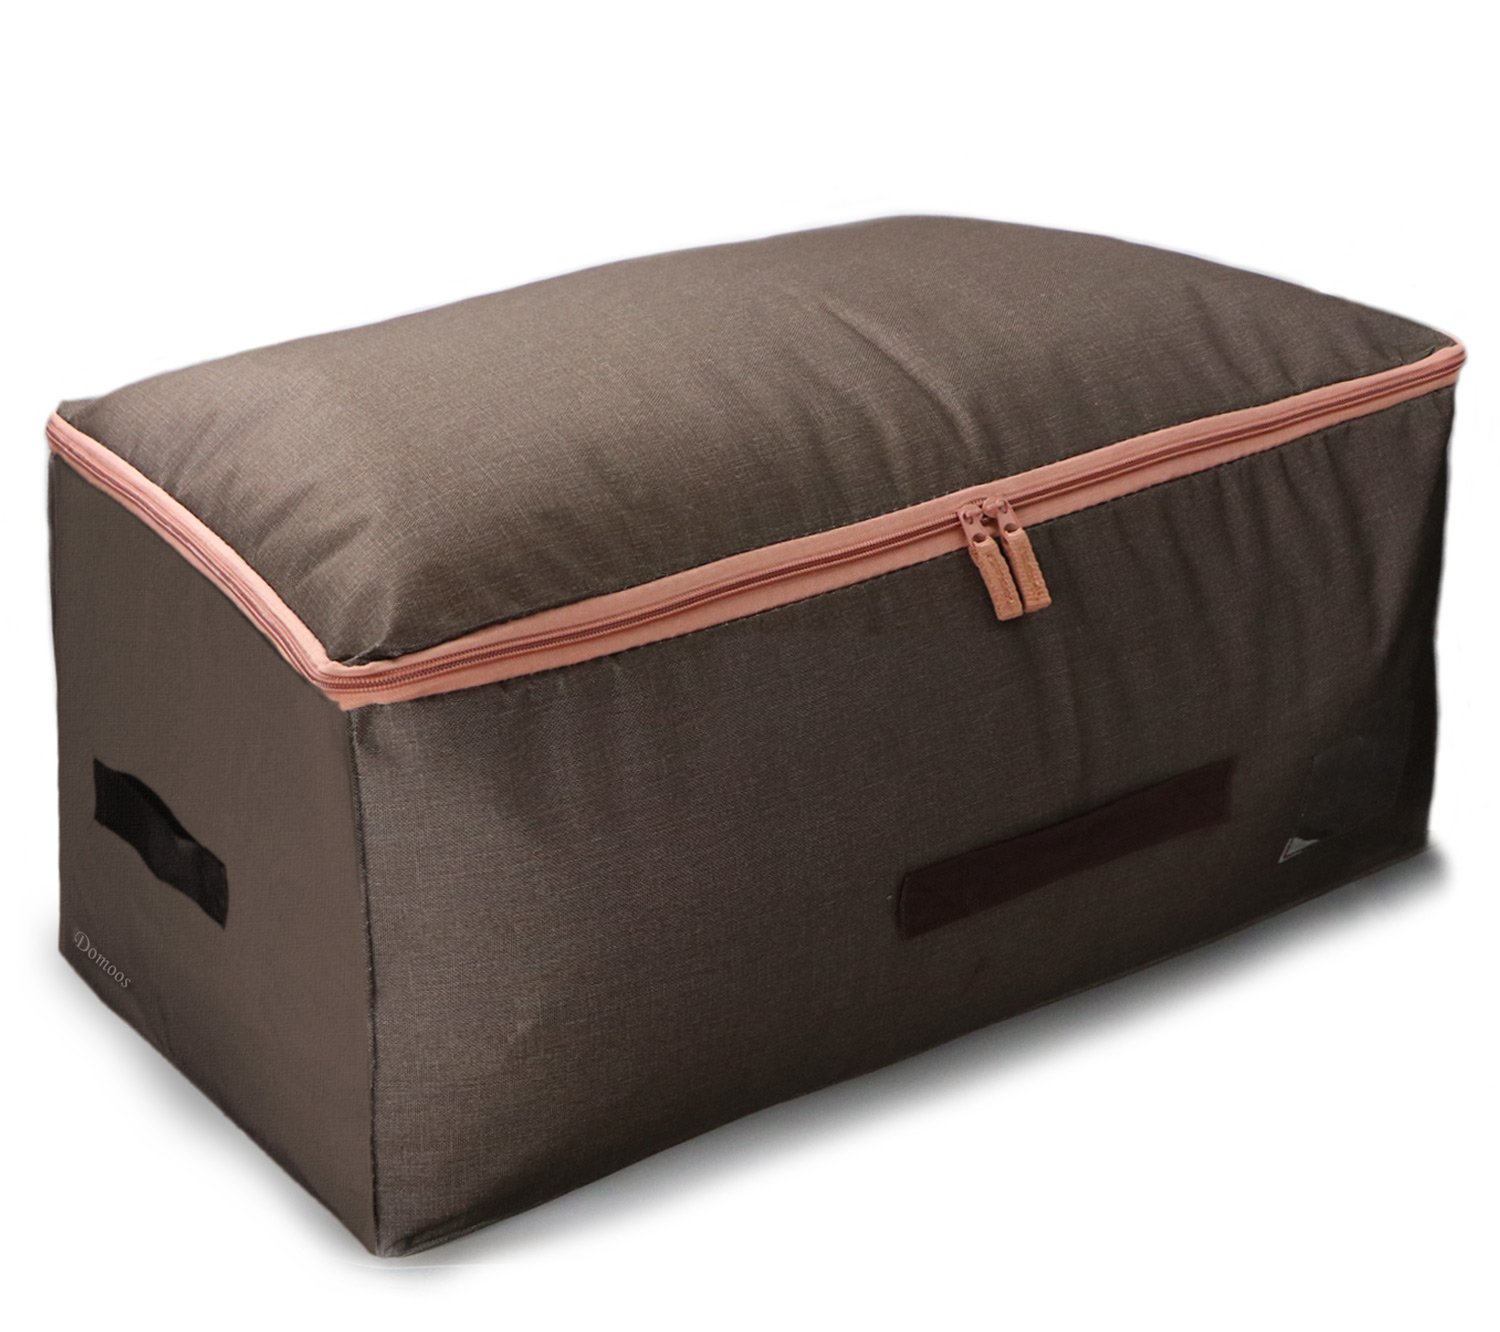 Foldable Under Bed Bag Sturdy Soft Side Storage Organizer Space Saver Bag with Handles Moistureproof Container for Bedding, Duvets, Comforters, Blanket, Clothes, Pillows